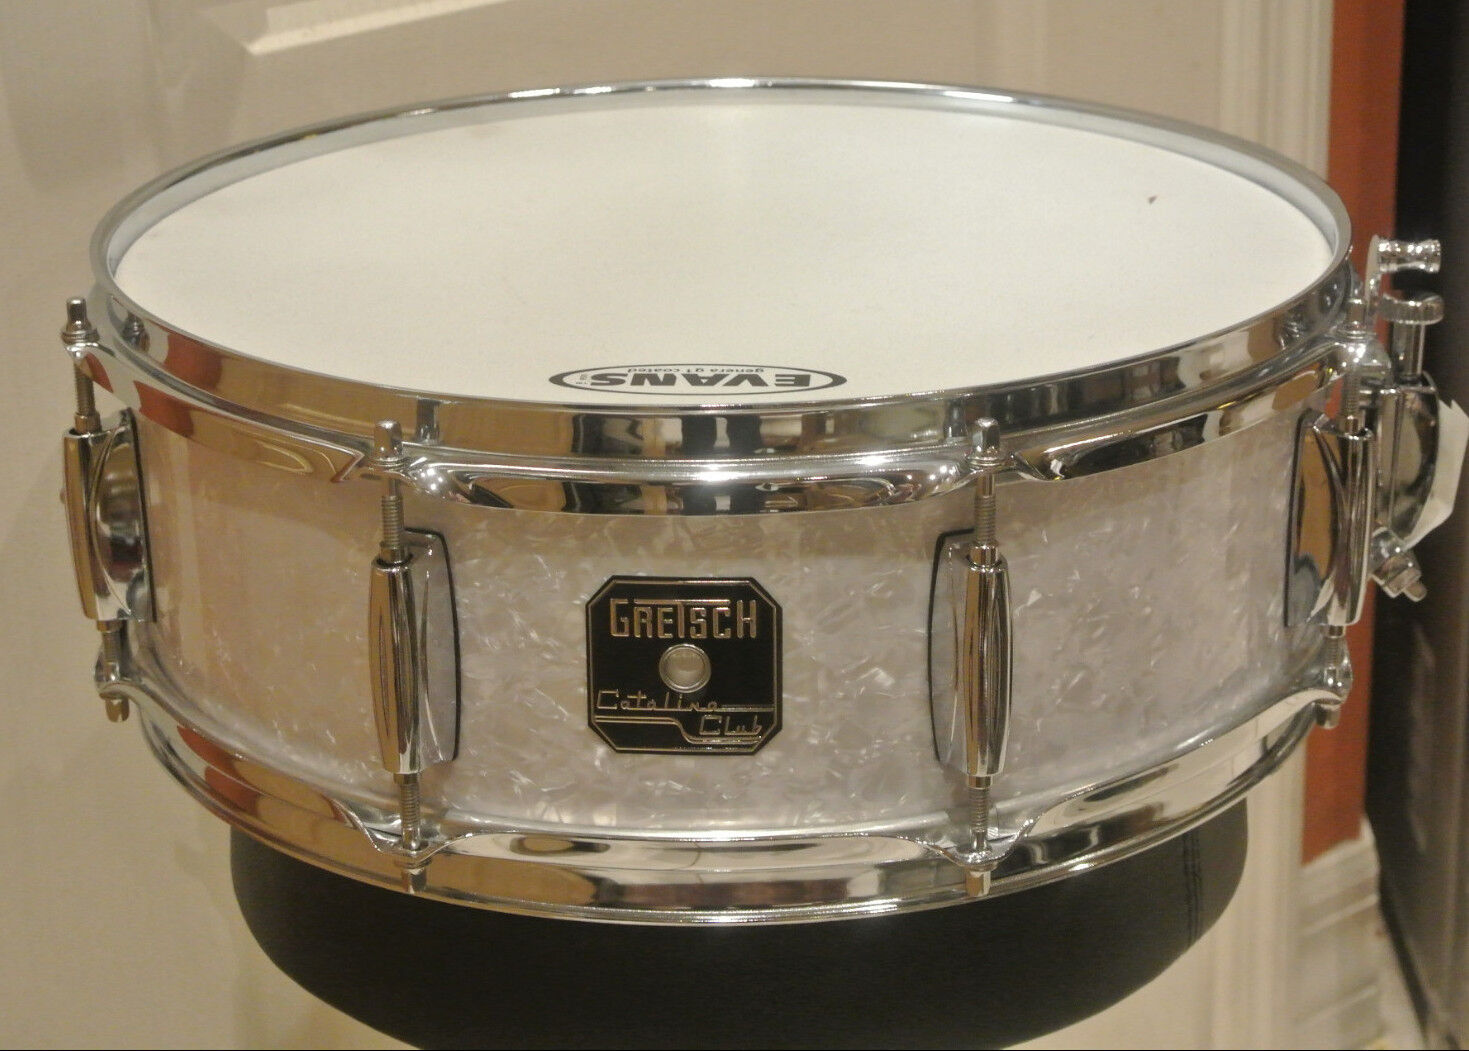 gretsch catalina club 14 snare drum in white pearl for drum set lot g168 ebay. Black Bedroom Furniture Sets. Home Design Ideas